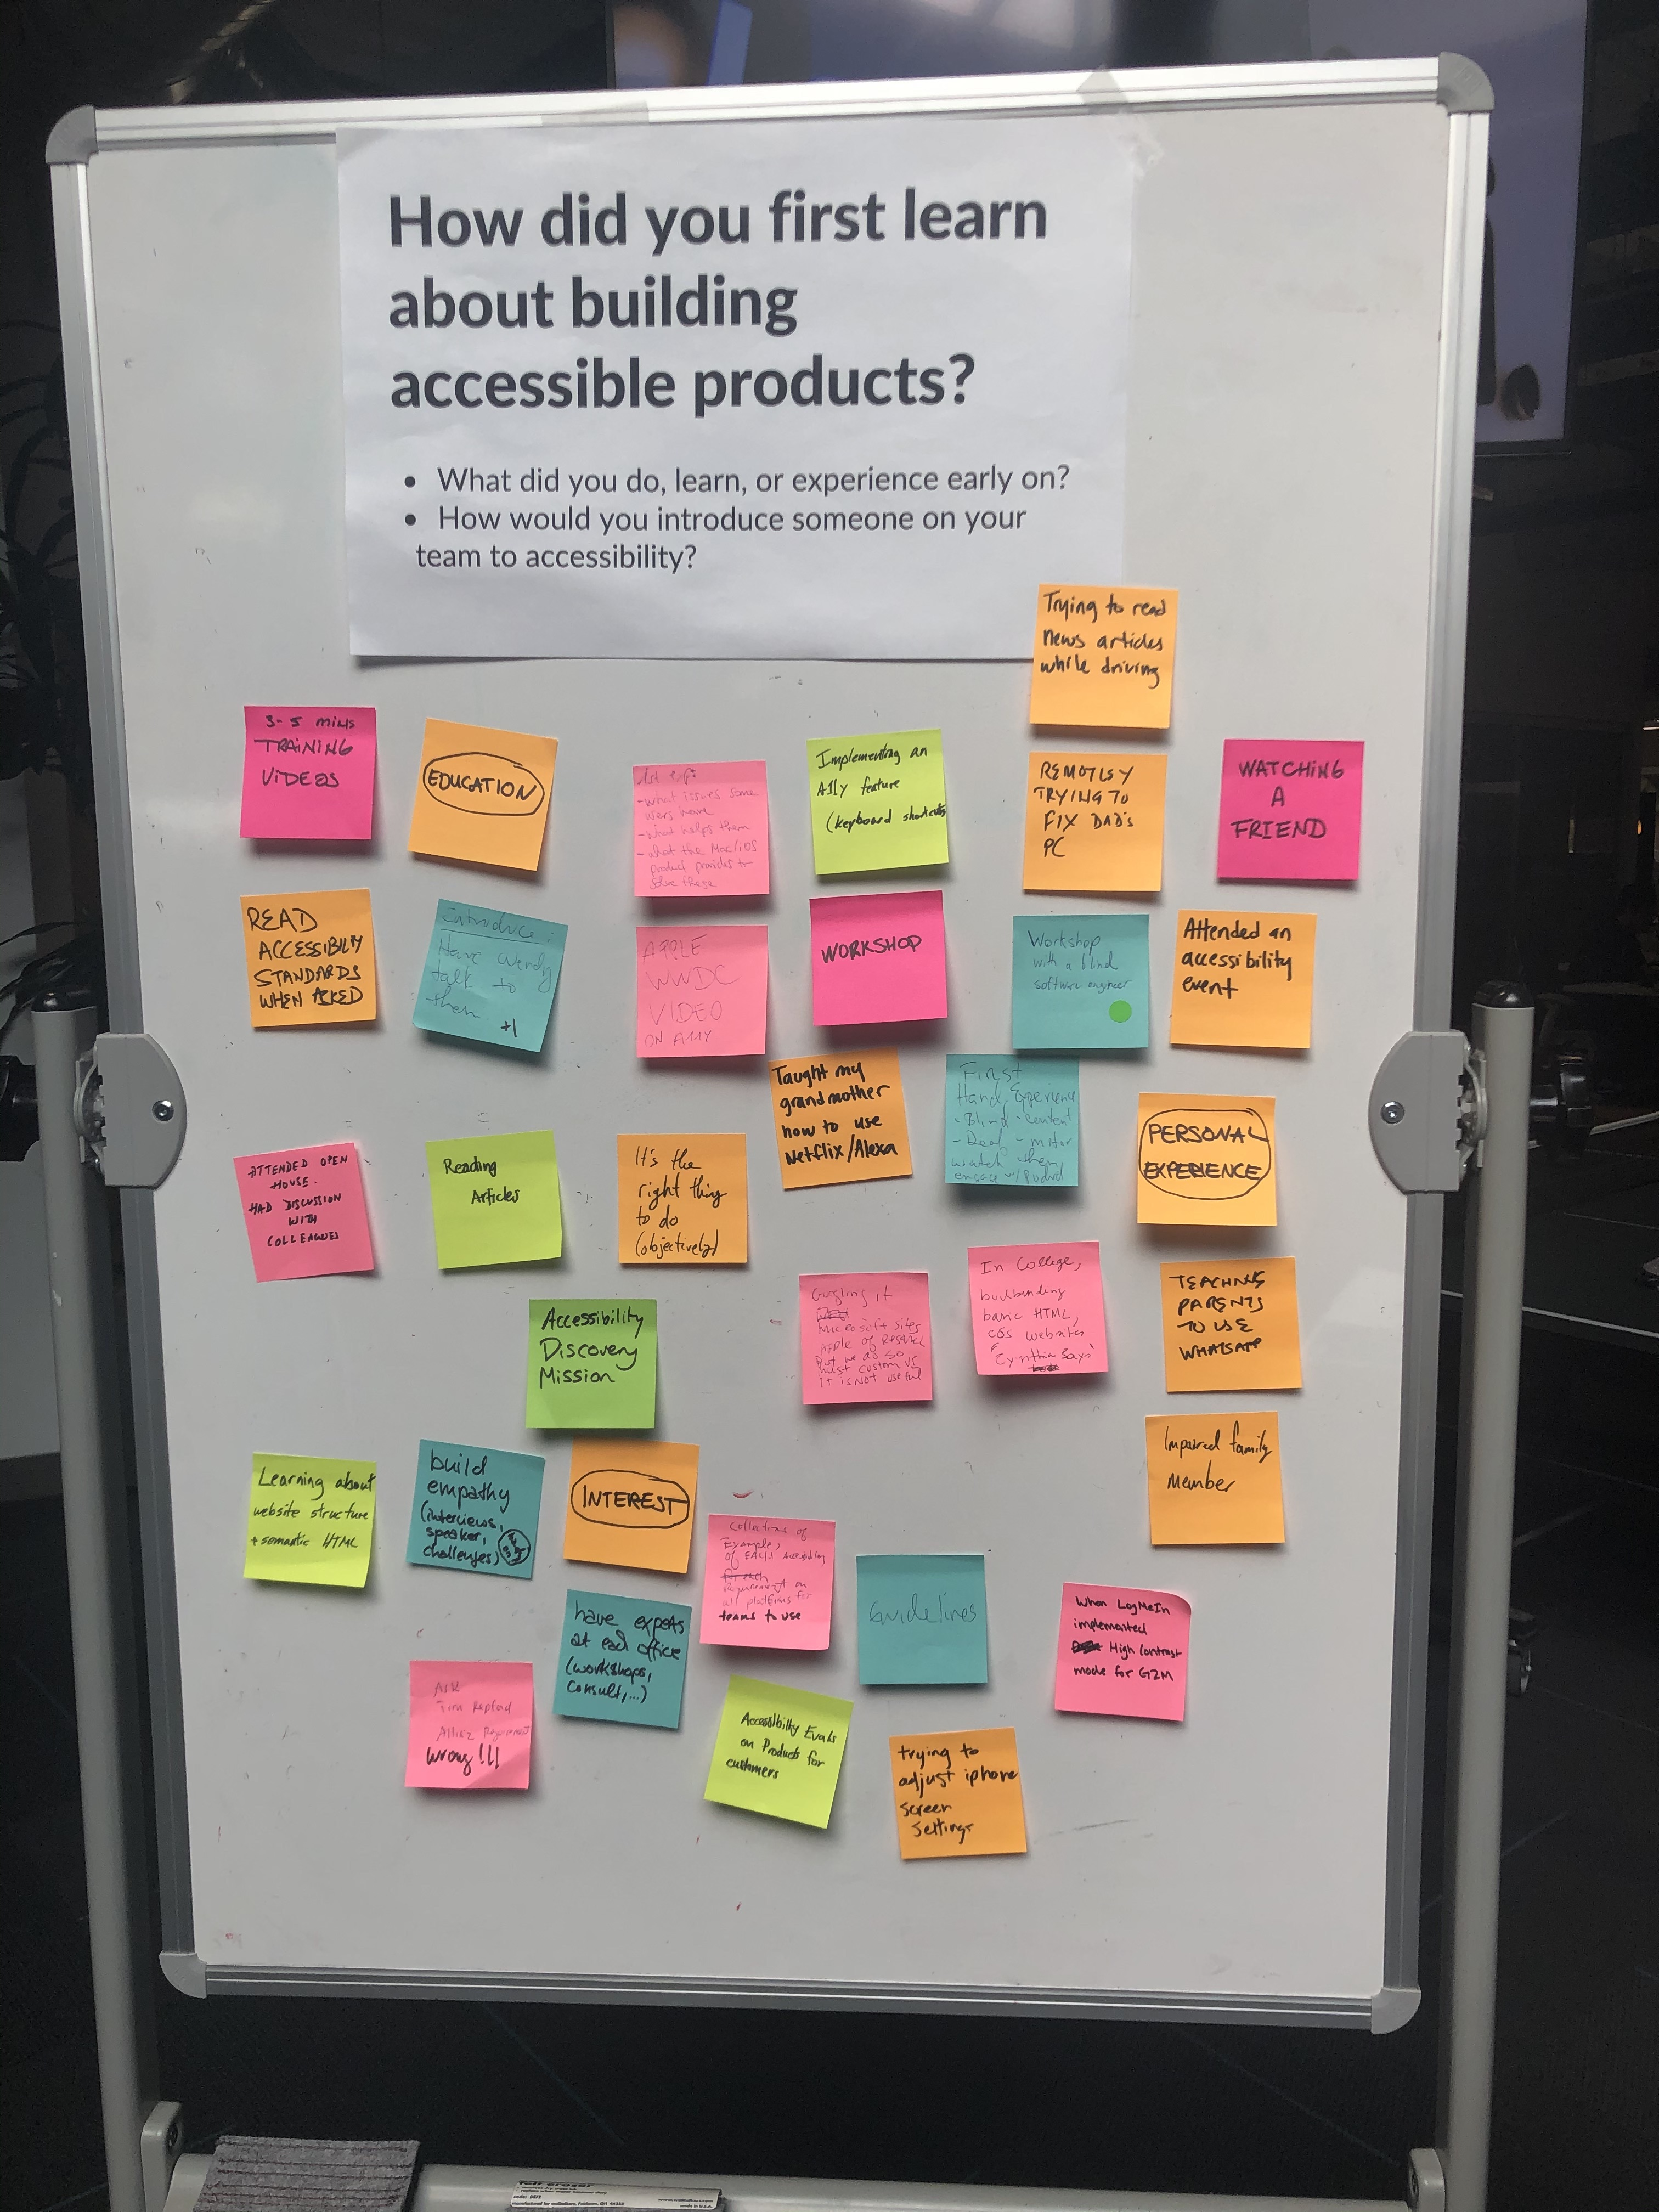 "A whiteboard with a question on it ""How id you first learn about building accessibility products?"" Below the question are postit notes with individual responses."